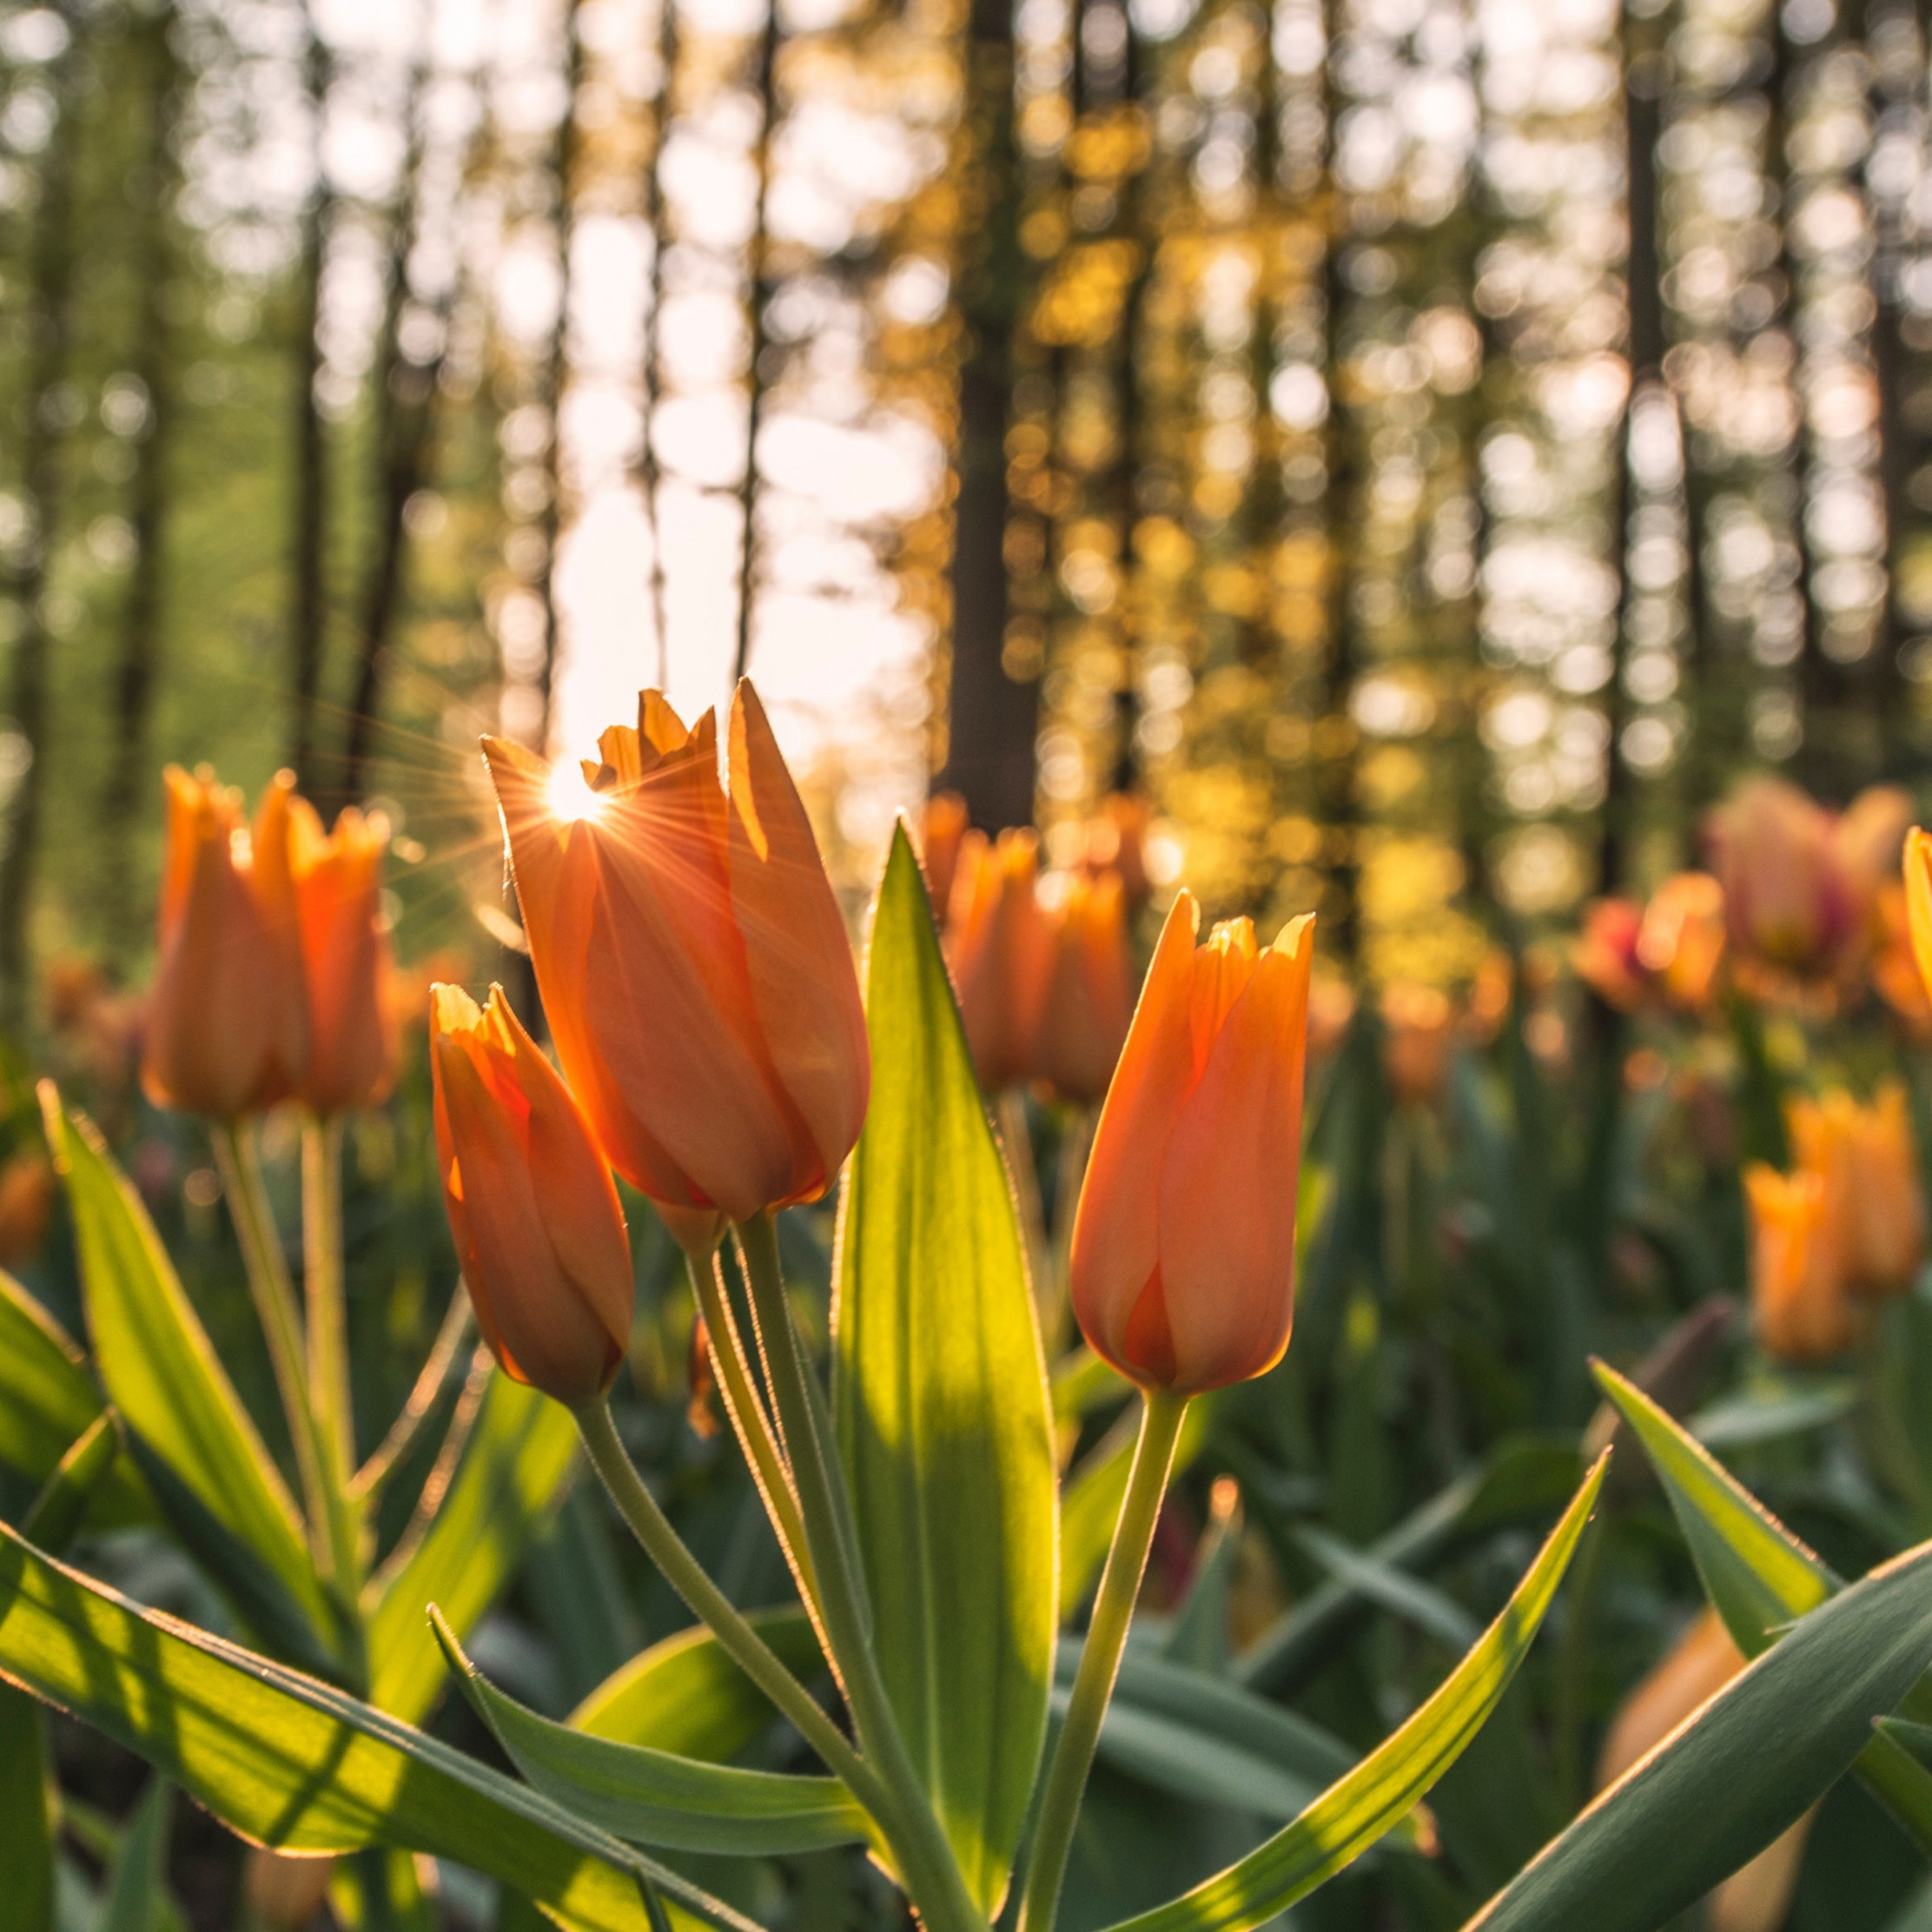 Orange tulips in sunrise | 2224x2224 wallpaper